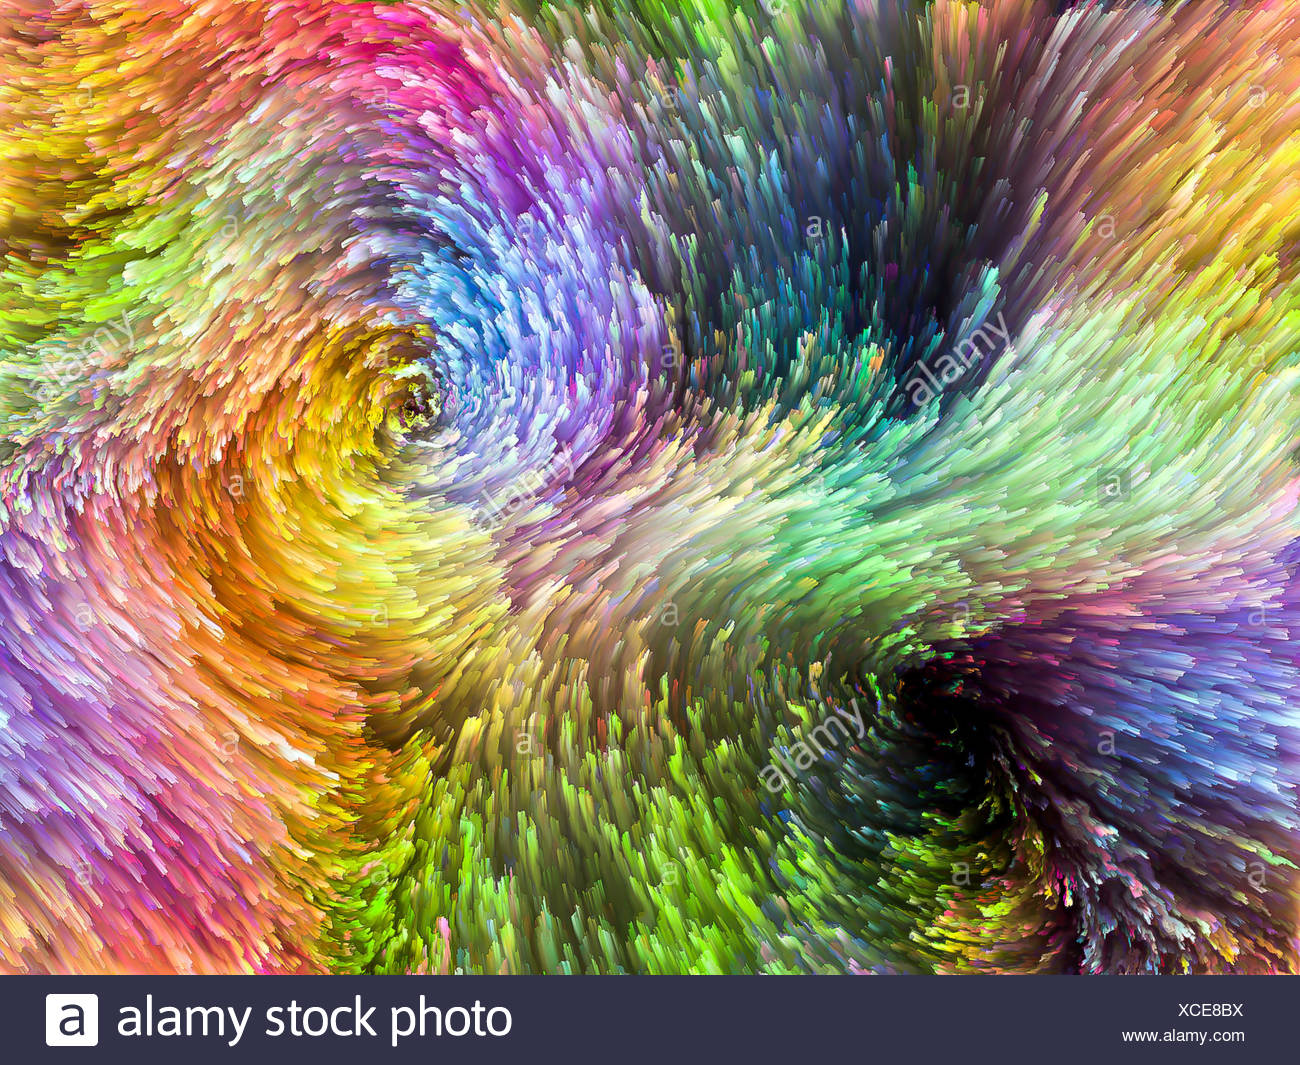 Color Burst - Stock Image